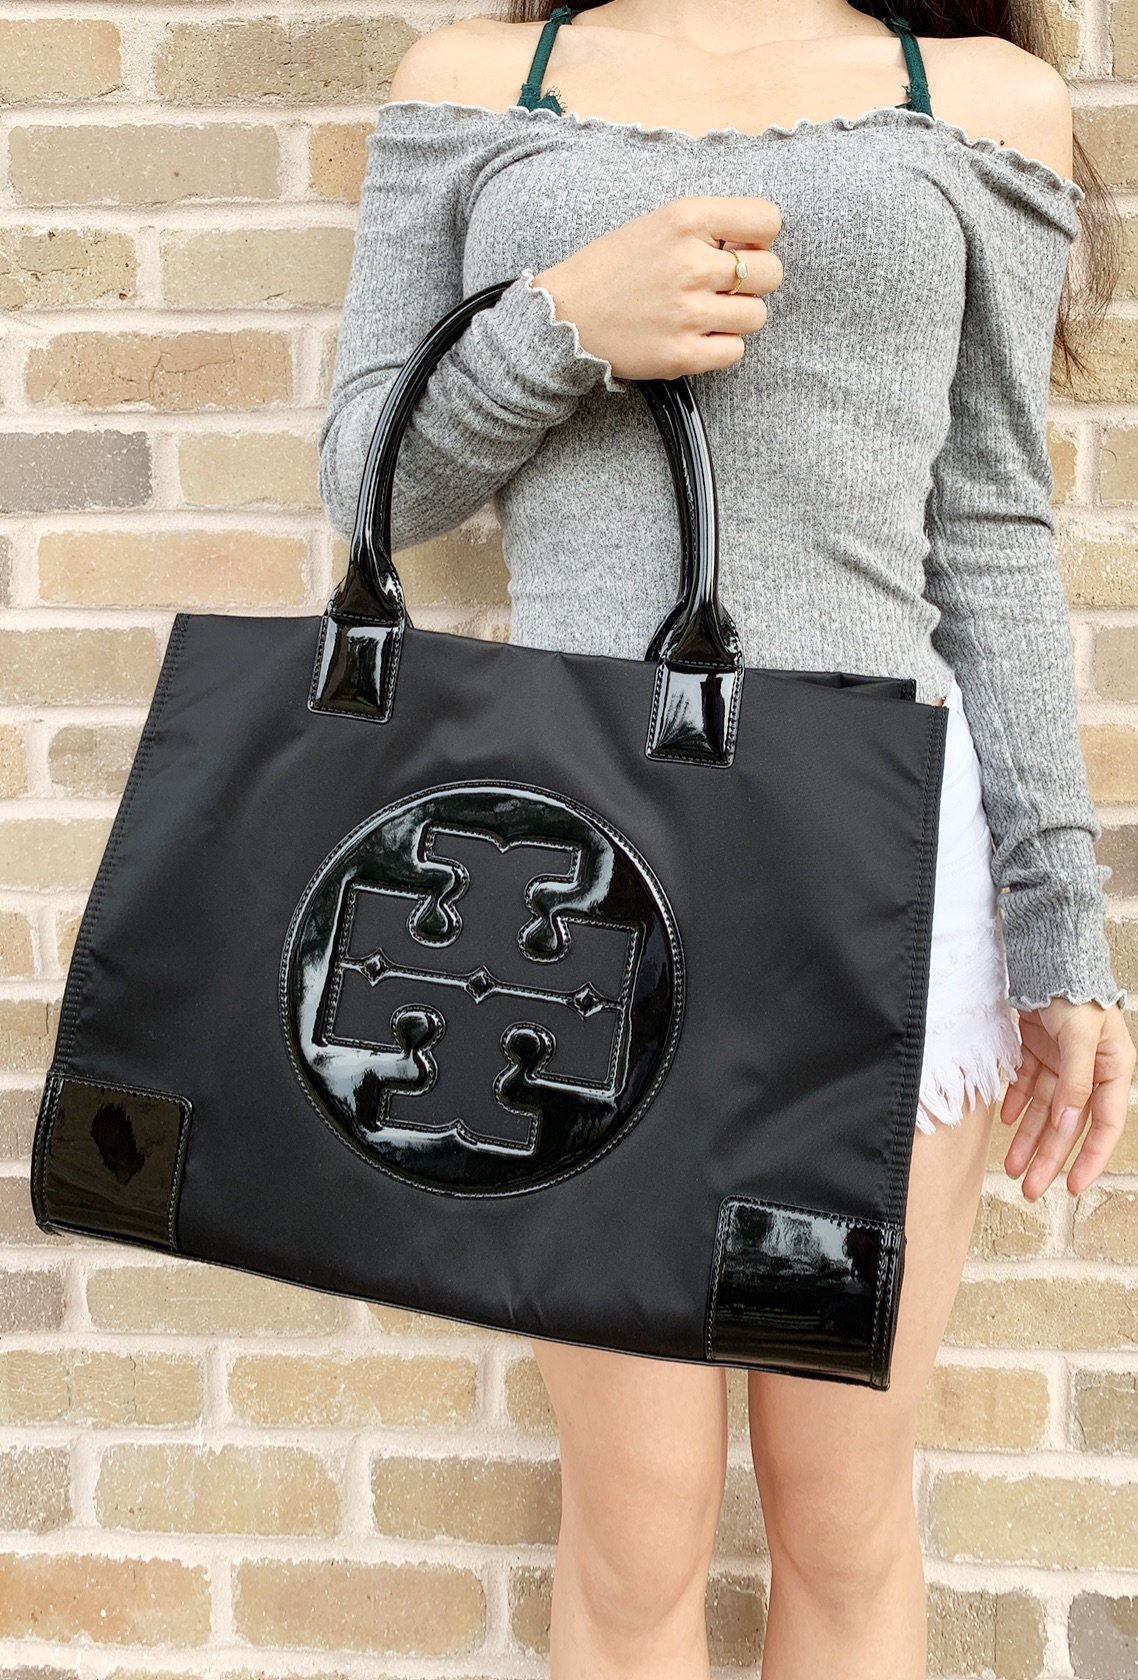 bf7353e3429d Tory Burch Ella Large Tote Black Nylon Patent Leather 885427179320 ...